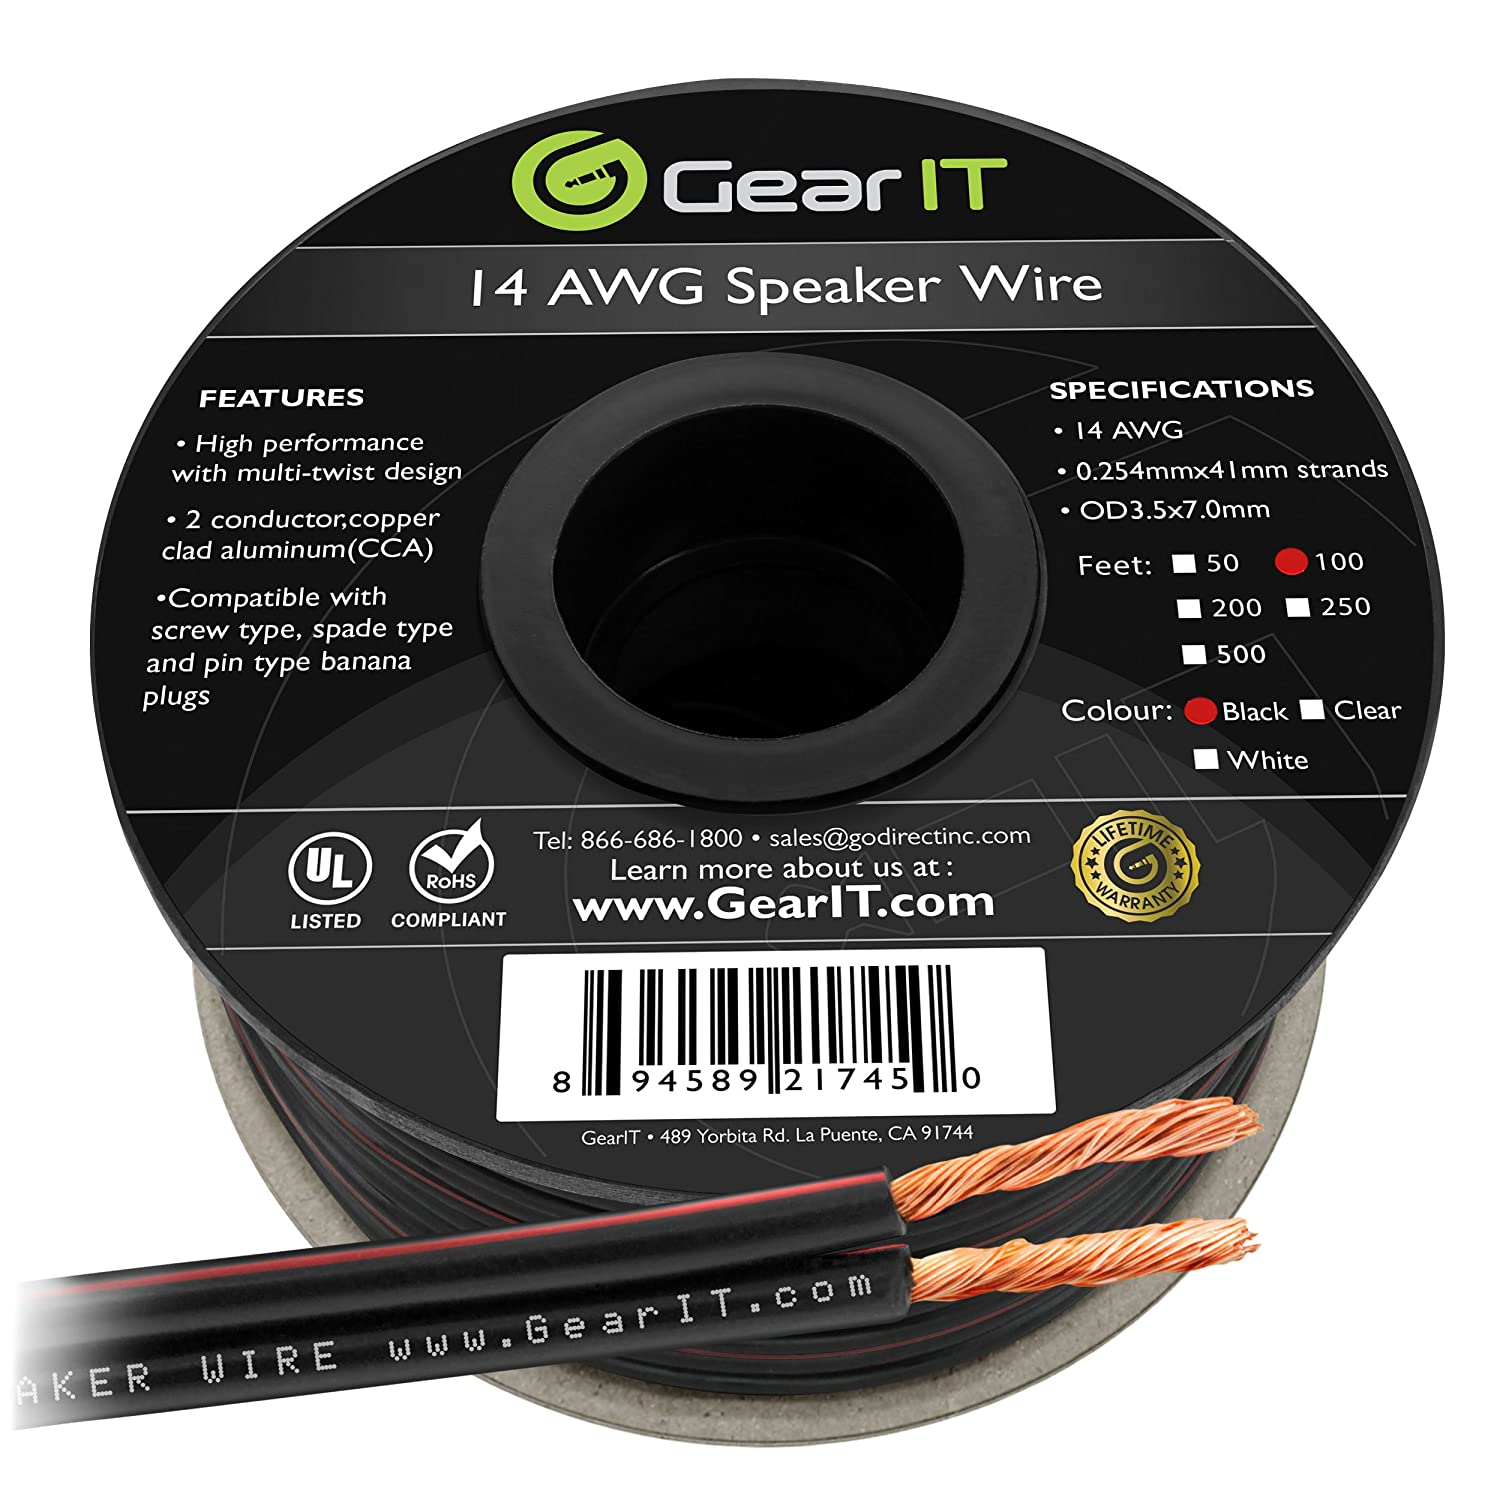 GearIT 14AWG Speaker Wire, Pro Series 14 Gauge Speaker Wire Cable (100 Feet / 30.48 Meters) Great Use for Home Theater Speakers and Car Speakers, Black